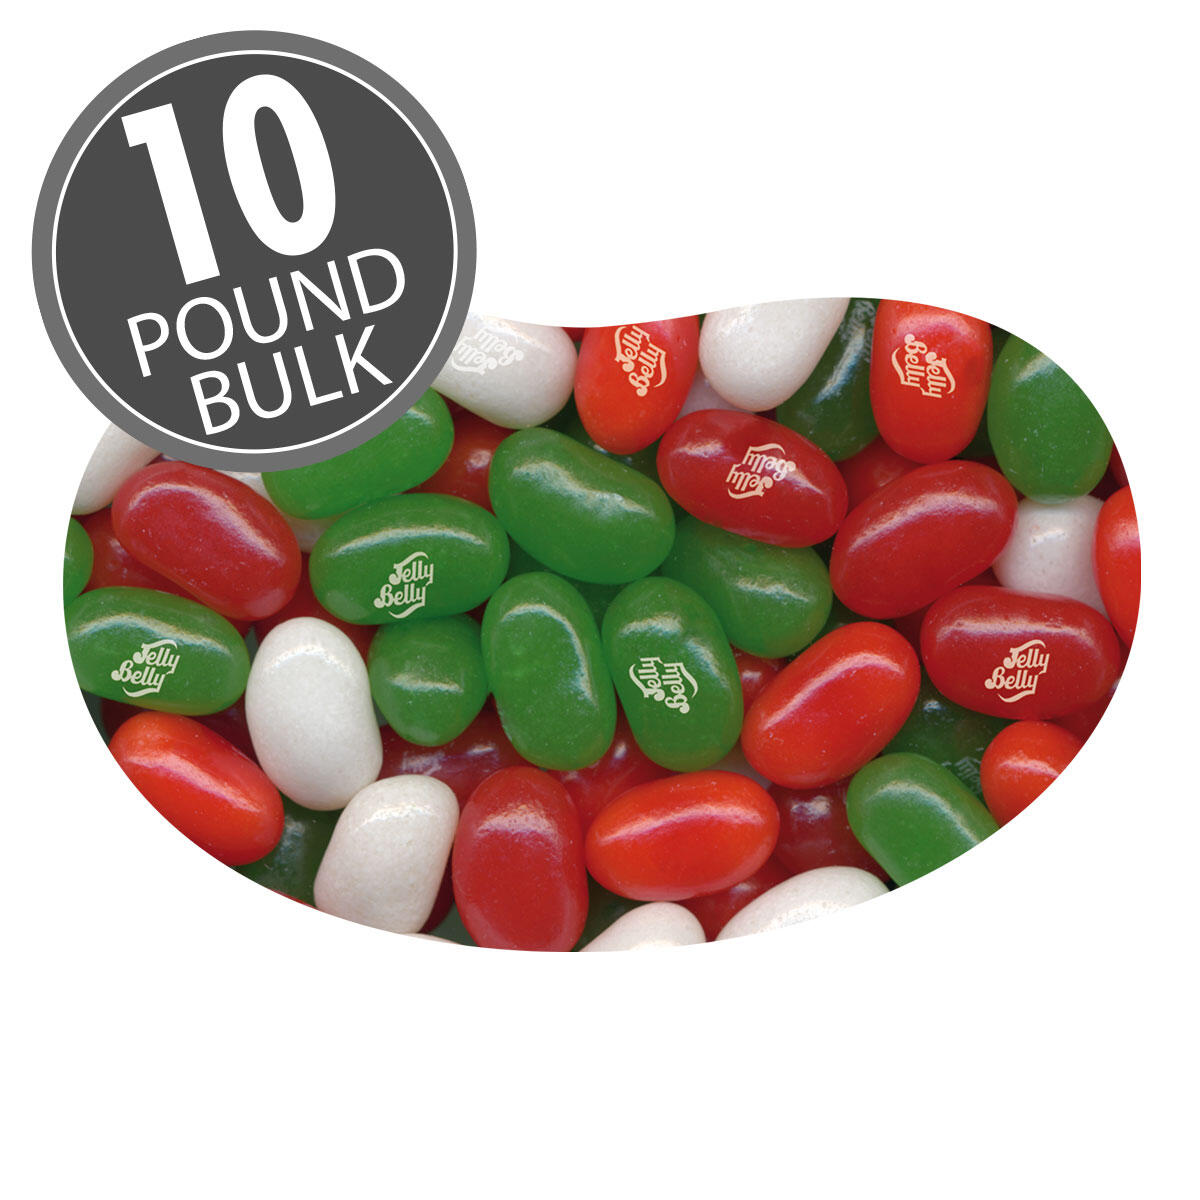 Jelly Belly Christmas Mix - 10 lbs bulk